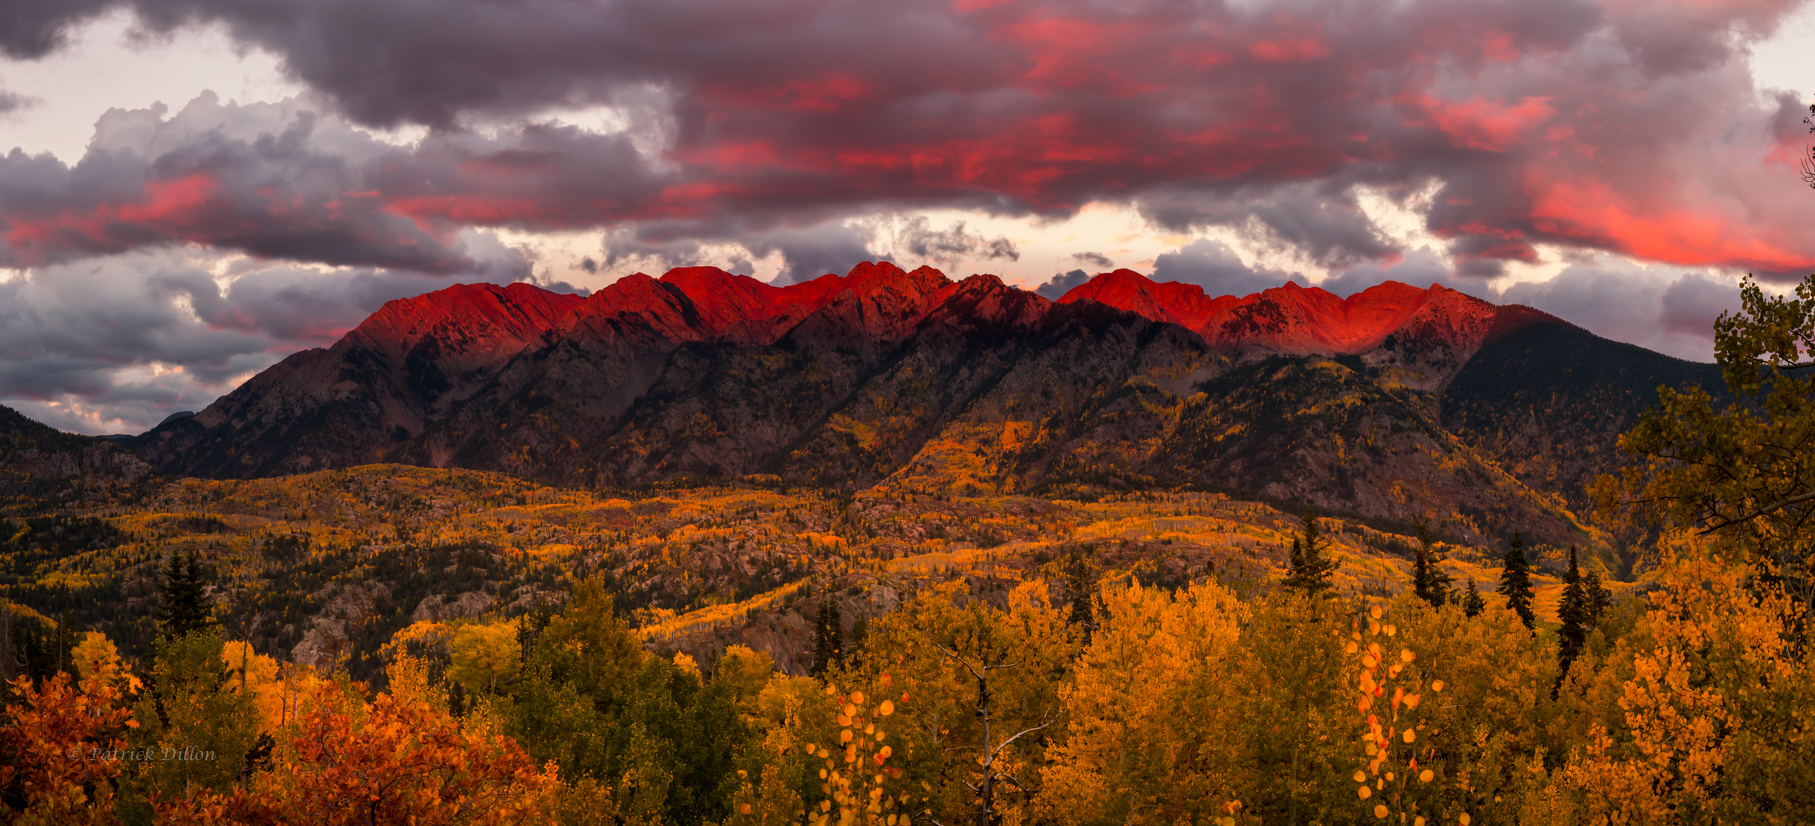 Heavenly crown fall colors sunset Needle mountains